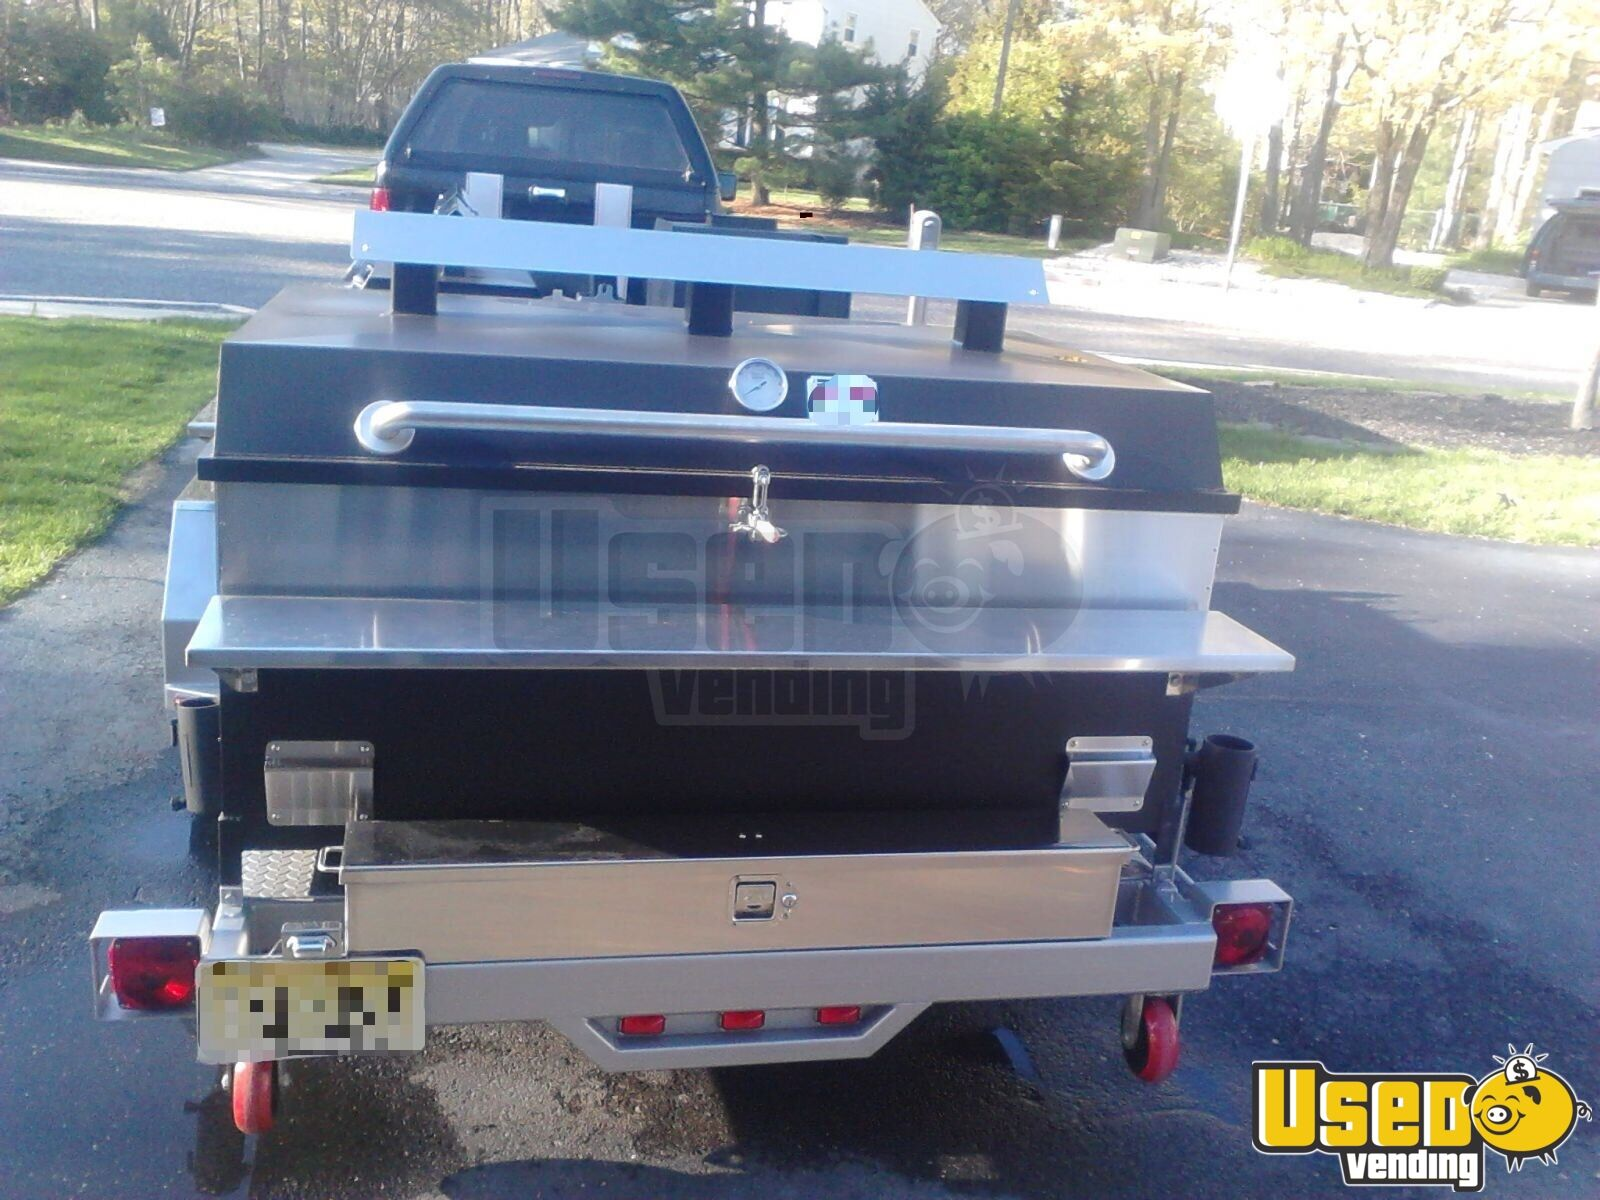 2014 Bq Grills Open Bbq Smoker Trailer Chargrill New Jersey for Sale - 4